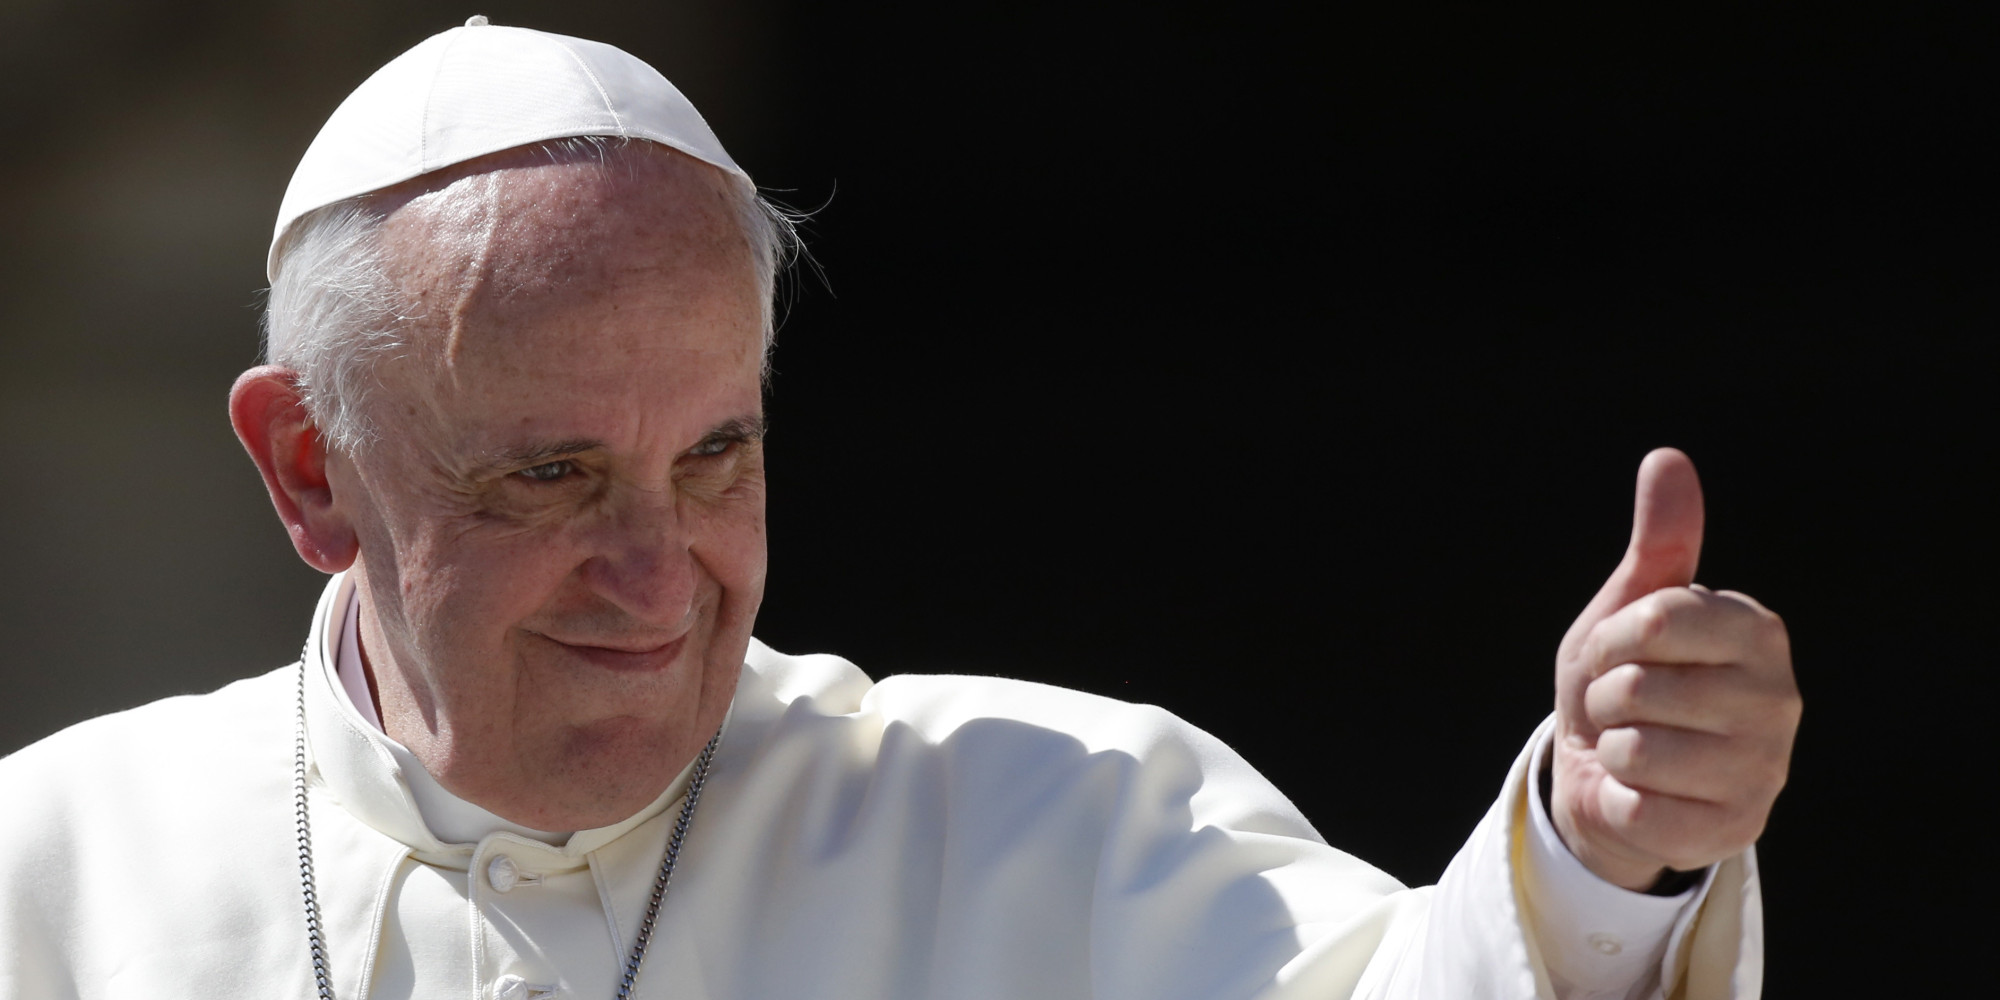 Why Eagles fans shouldn't ask the Pope to bless Sam Bradford's knees